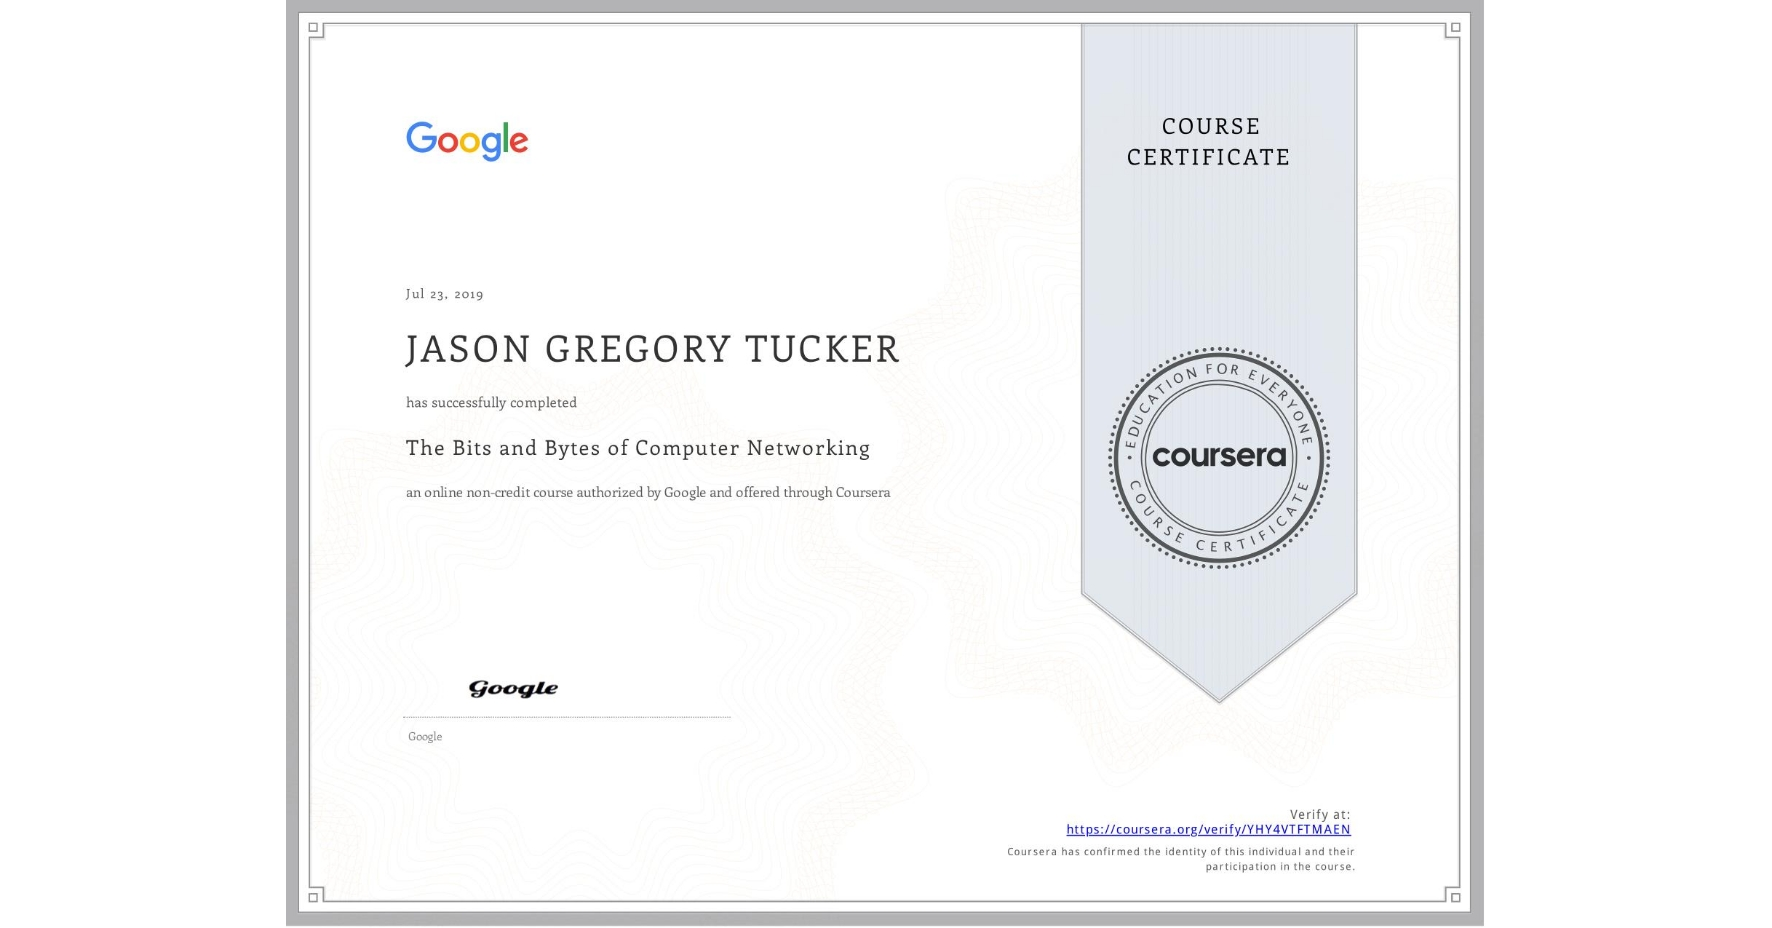 View certificate for JASON GREGORY  TUCKER, The Bits and Bytes of Computer Networking, an online non-credit course authorized by Google and offered through Coursera